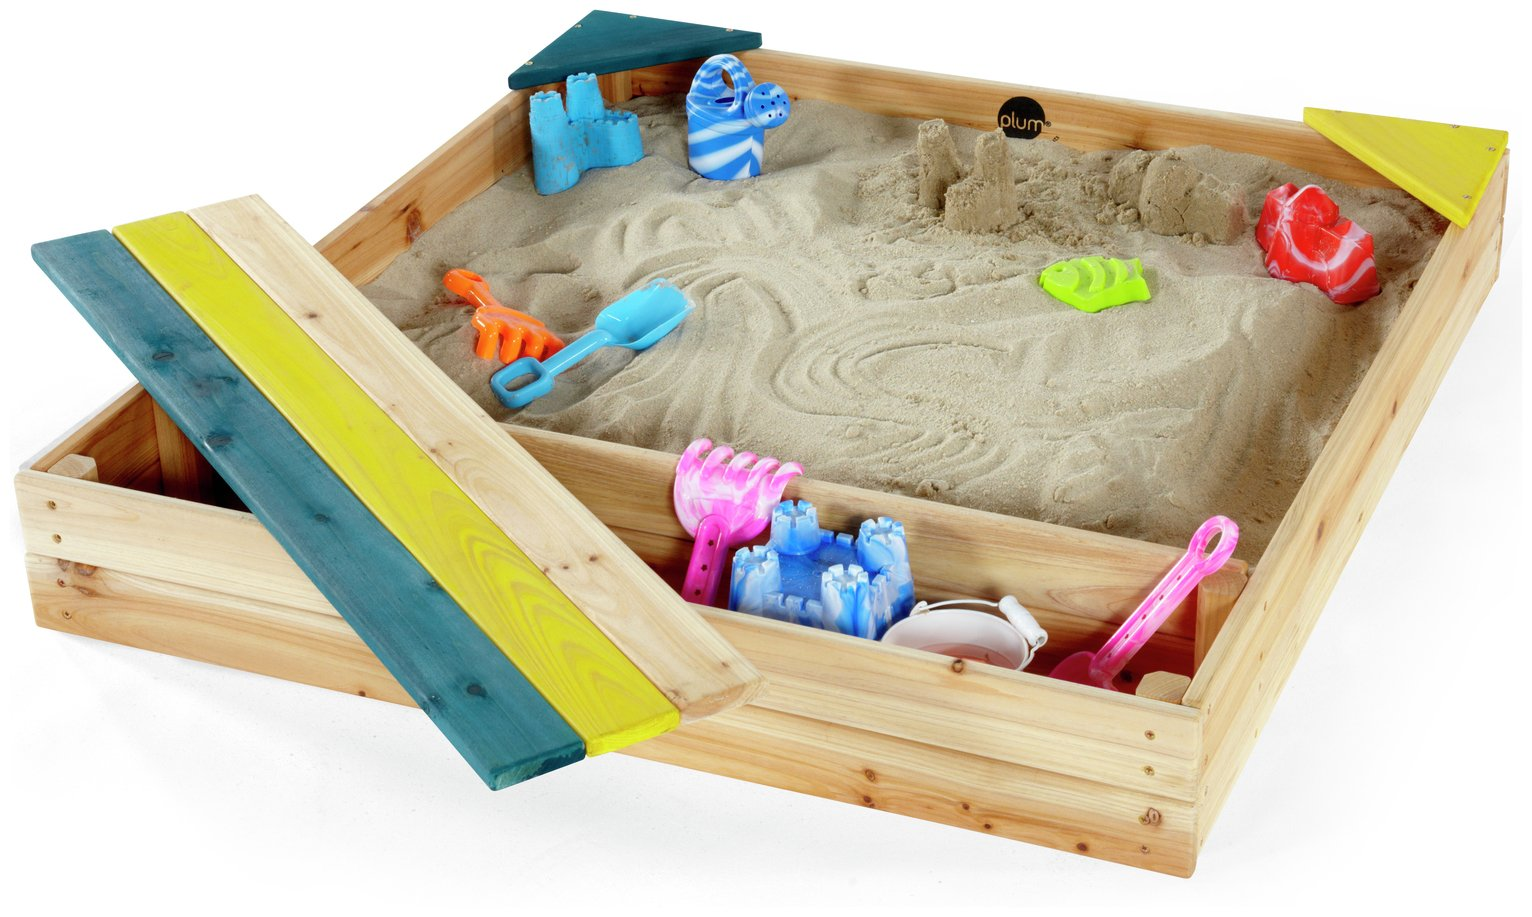 'Plum Store-it Outdoor Play Wooden Sand Pit.